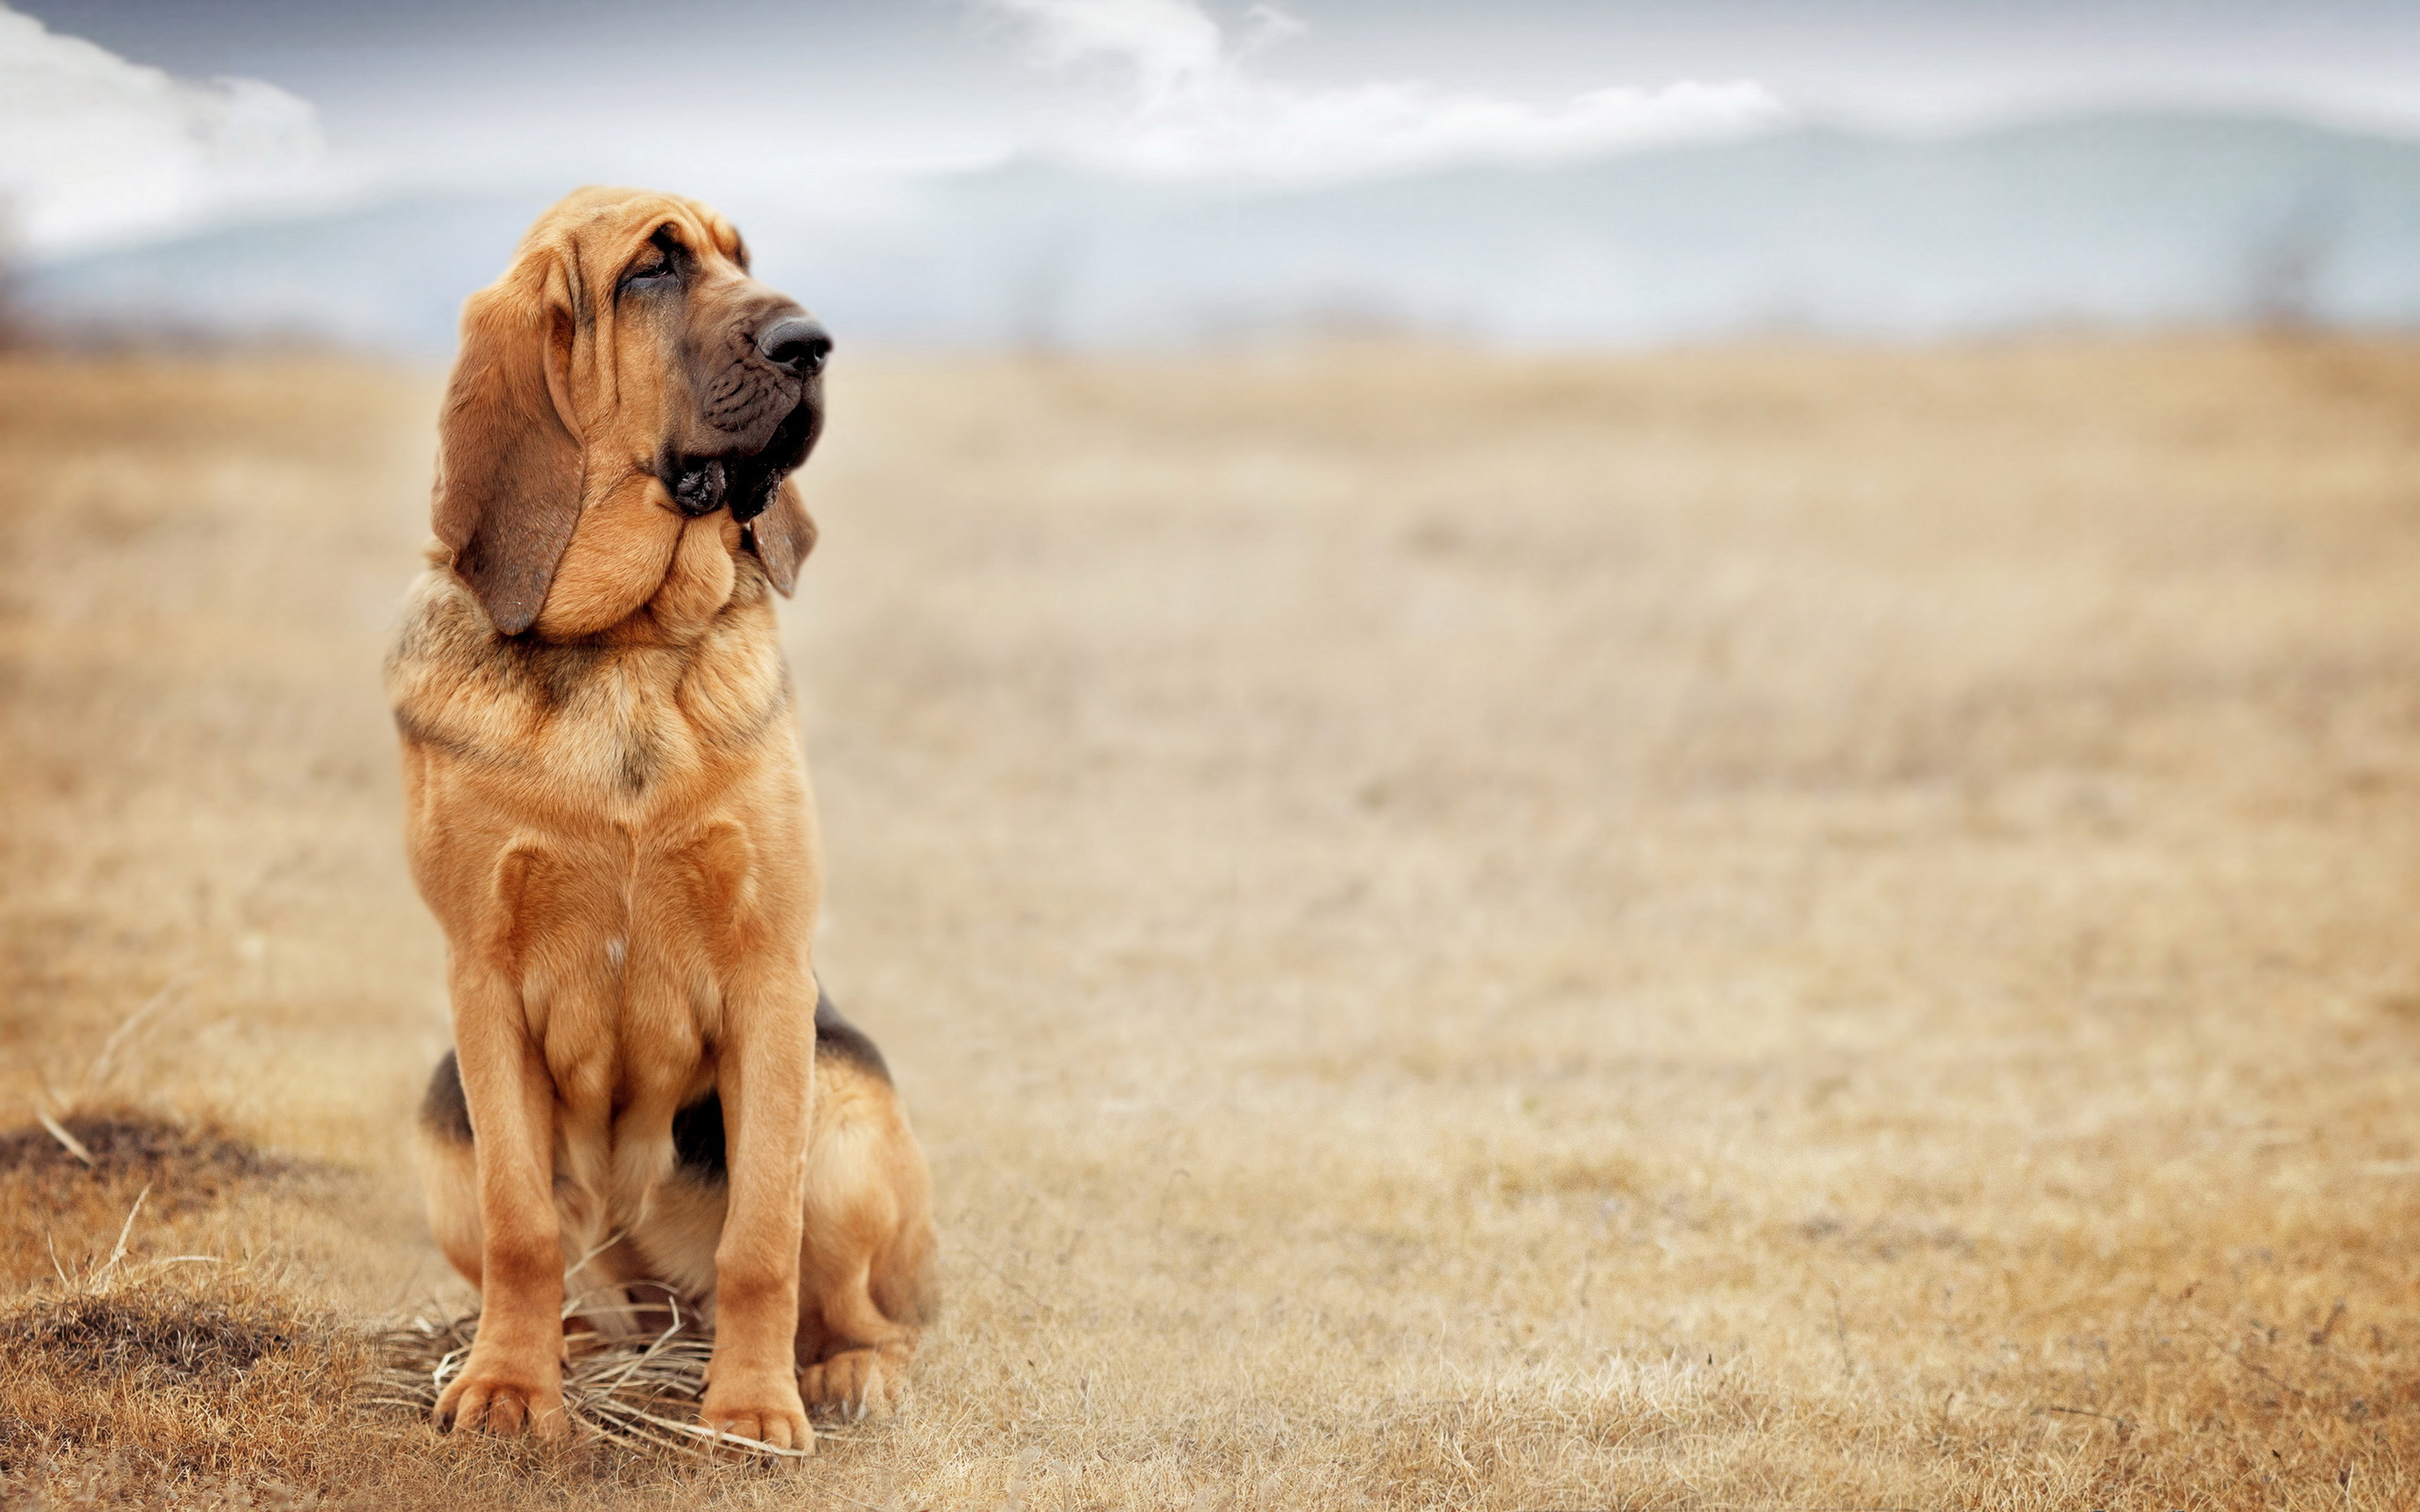 download bloodhound sitting in a field wallpapers and images 3840x2400